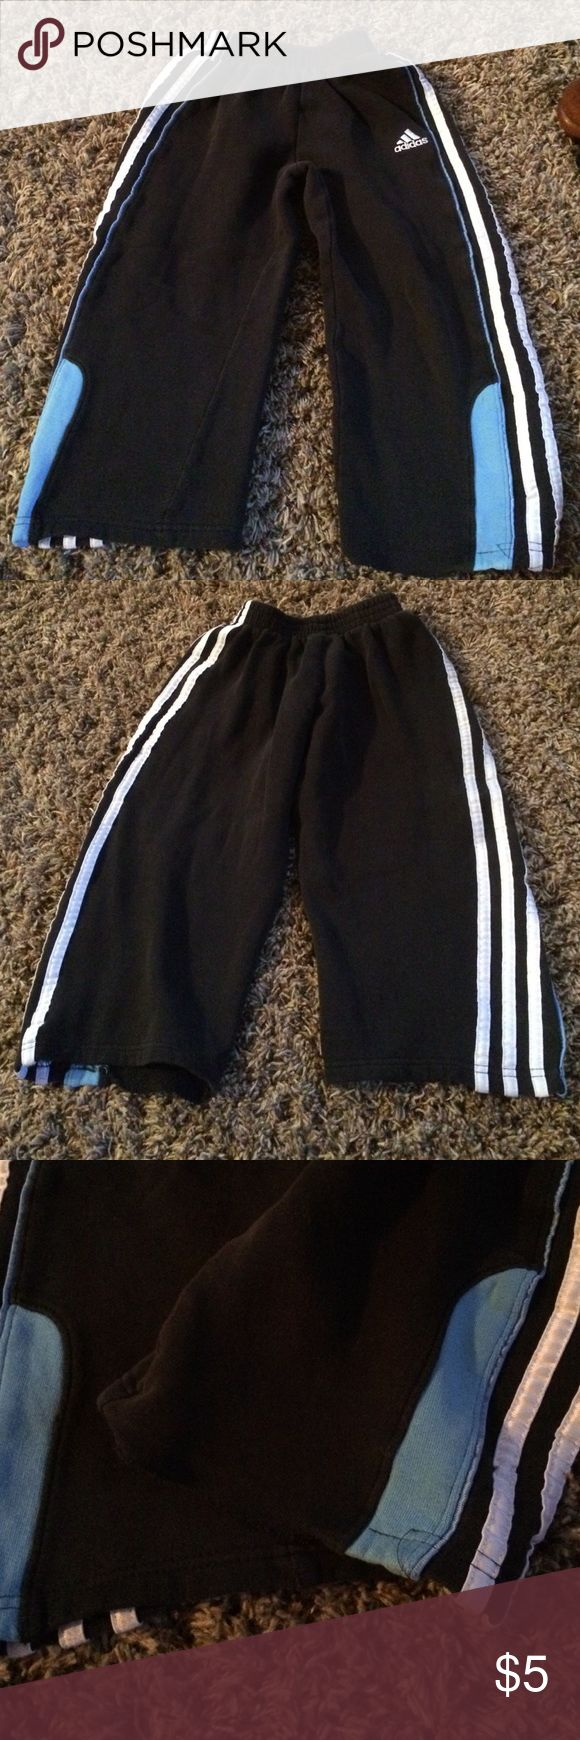 Adidas kid sweats- Adidas sweats! Run very small would fit 3 to 4 year old best! Has a seam that came apart but could be fixed, seen in picture! No pockets! Thanks for looking! Adidas Bottoms Sweatpants & Joggers